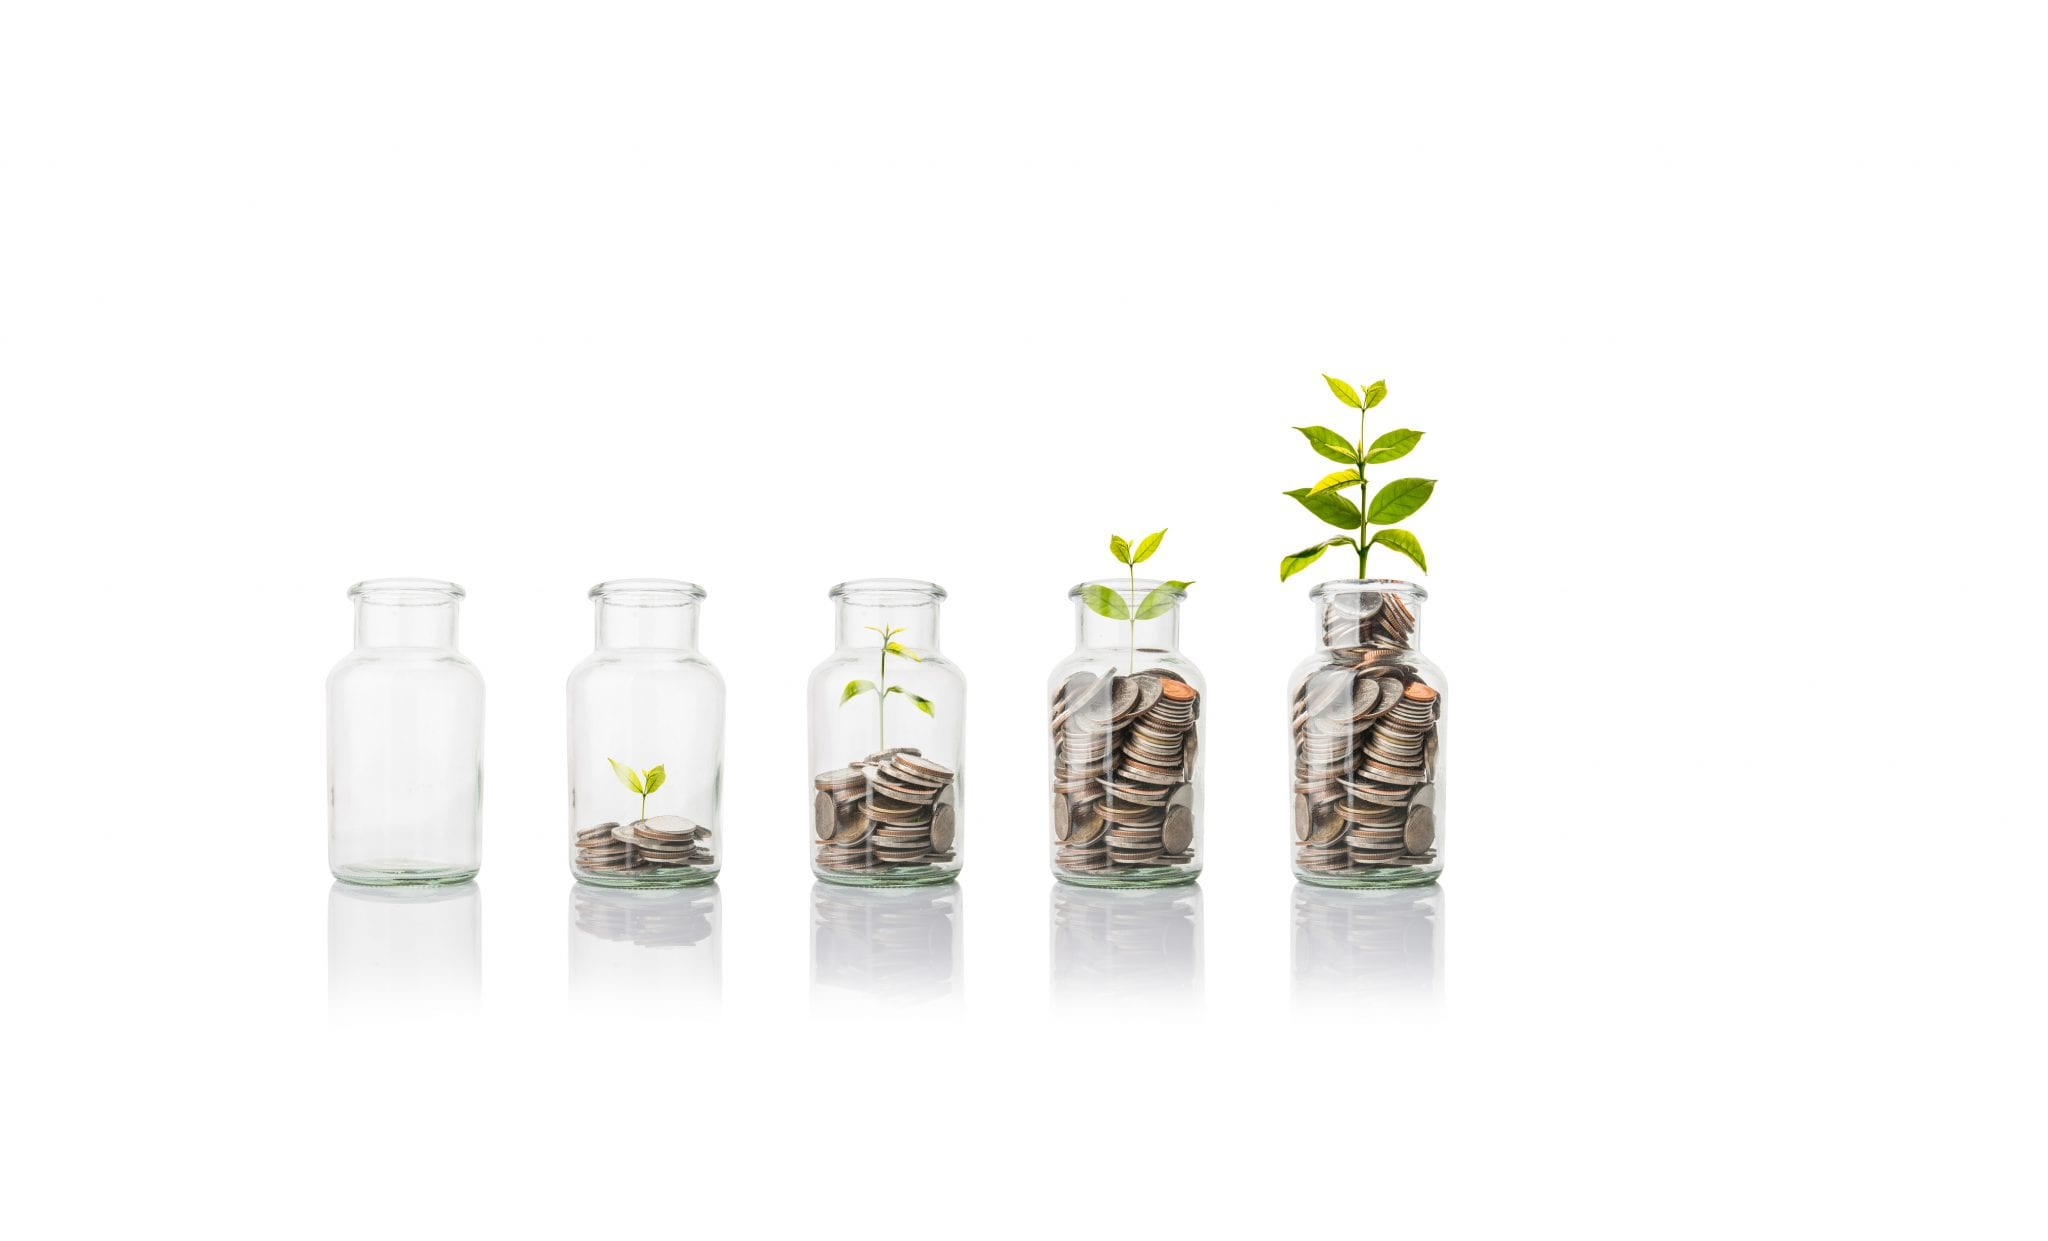 defined benefit and defined contribution in pension schemes accounting essay Affecting costs of providing defined benefit pensions relative to defined contribution pensions can be categorized into three groups: changes in asset markets, increasing longevity, and changes in regulations.